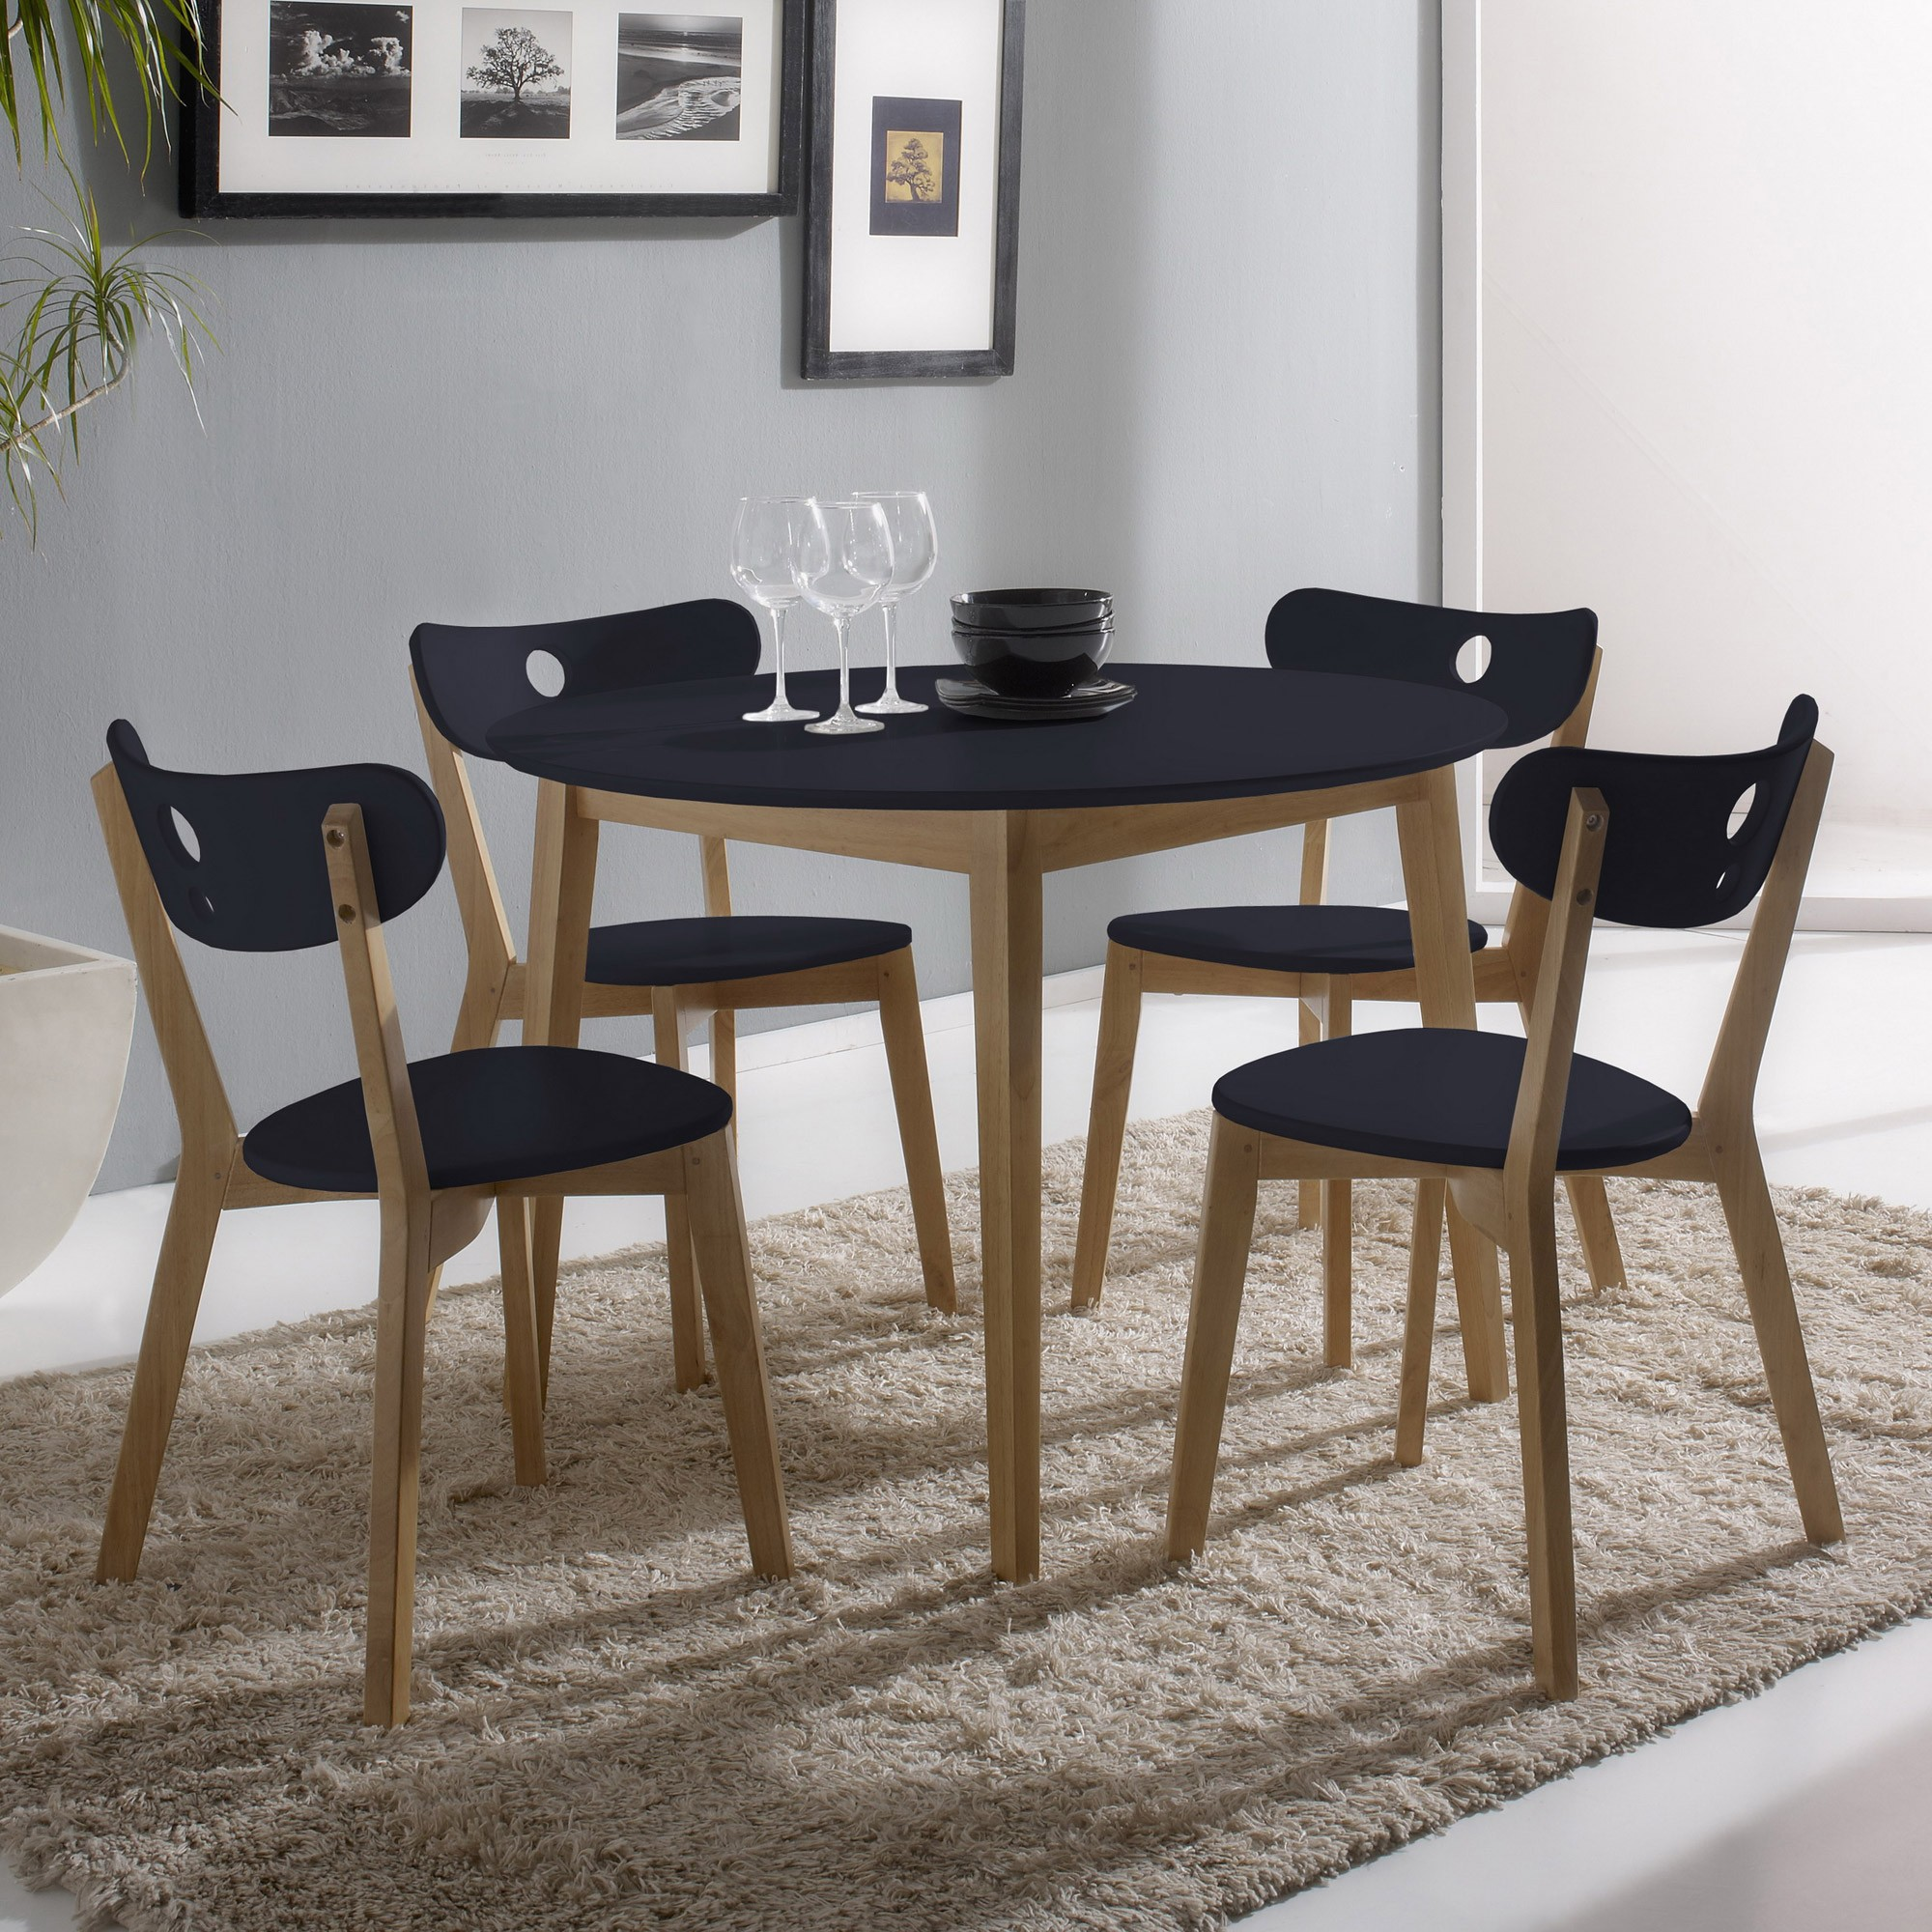 table de cuisine ronde en chene cuisine id es de d coration de maison gyne3ygdvm. Black Bedroom Furniture Sets. Home Design Ideas